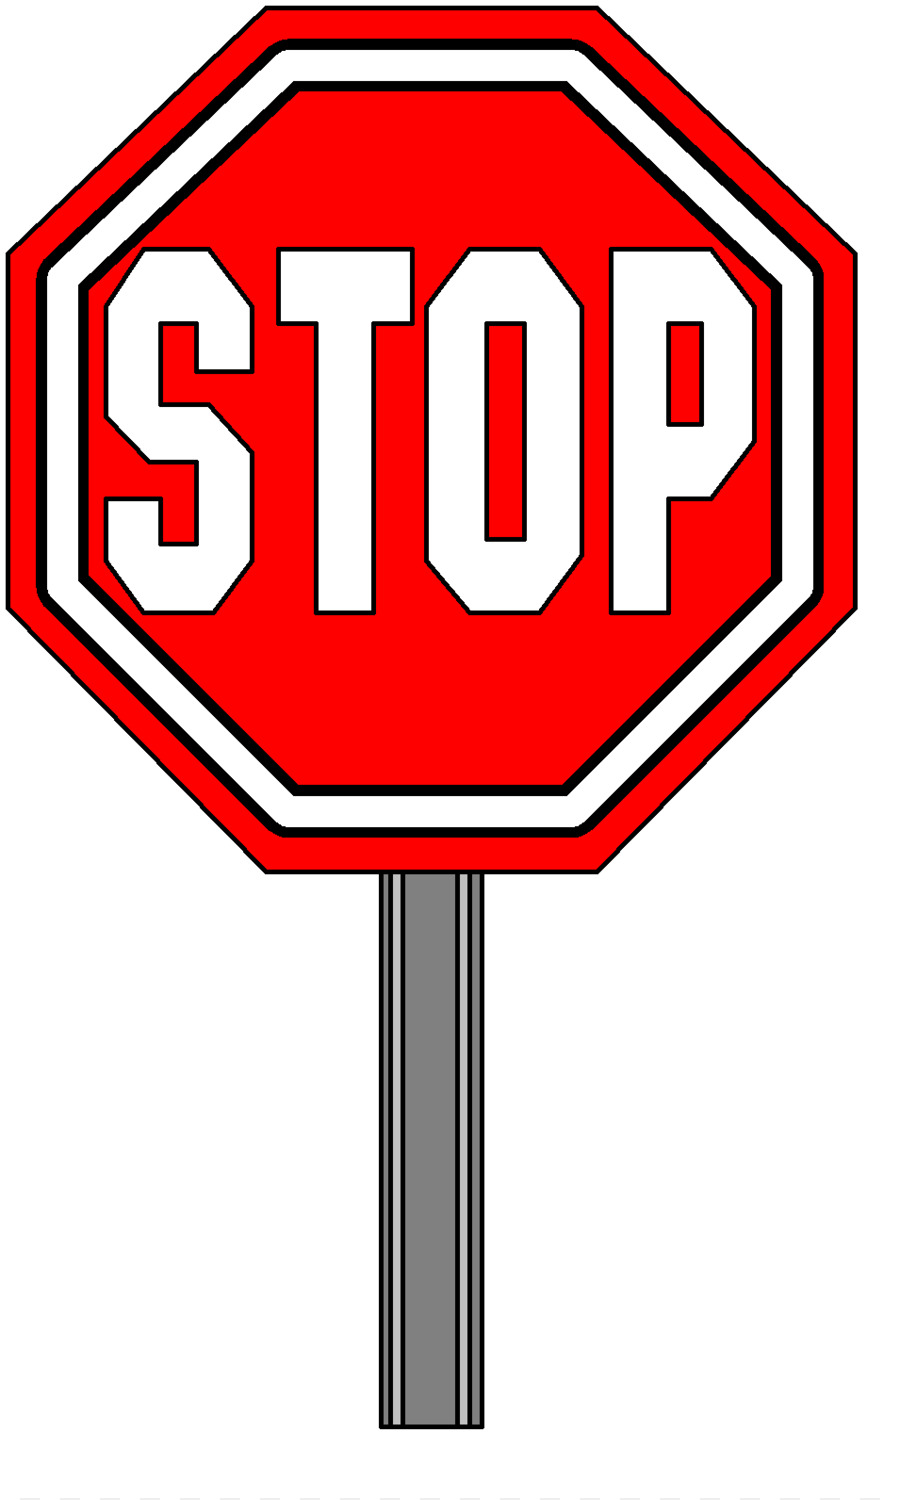 stop sign clip art sign stop png download 955 1590 free rh kisspng com stop sign clip art black and white stop sign clip art free